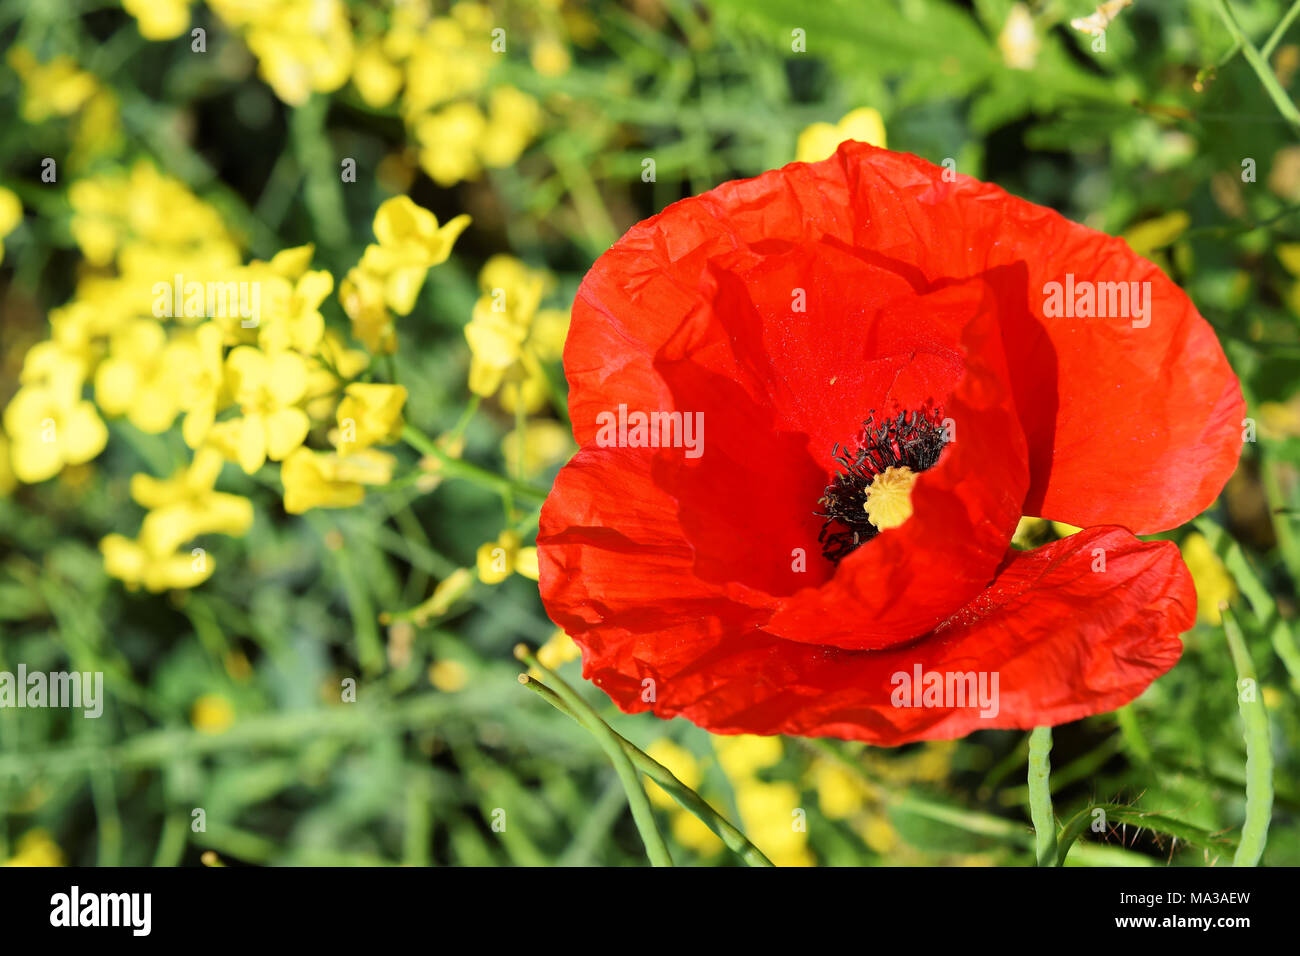 Poppy flower symbol of anzac day stock photo 178324353 alamy poppy flower symbol of anzac day mightylinksfo